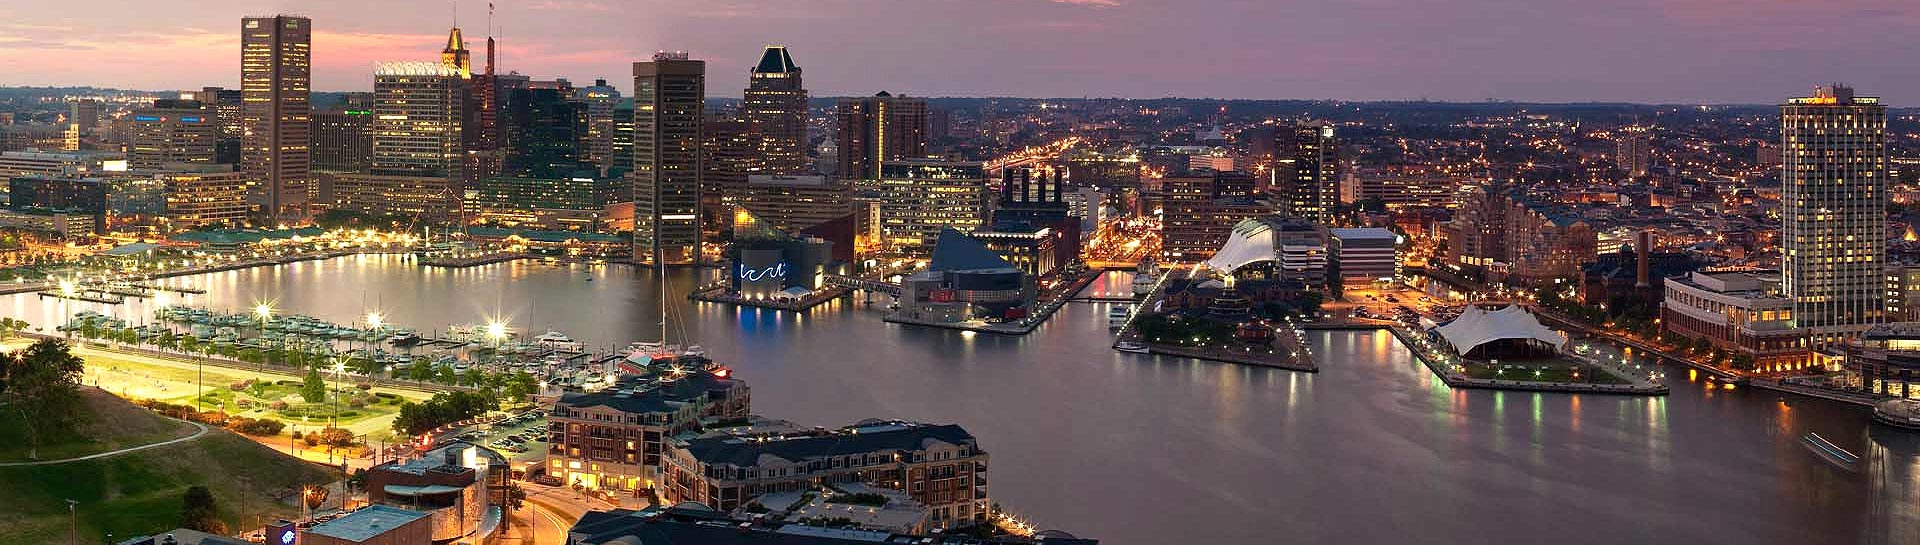 Baltimore Harbor skyline panoramic